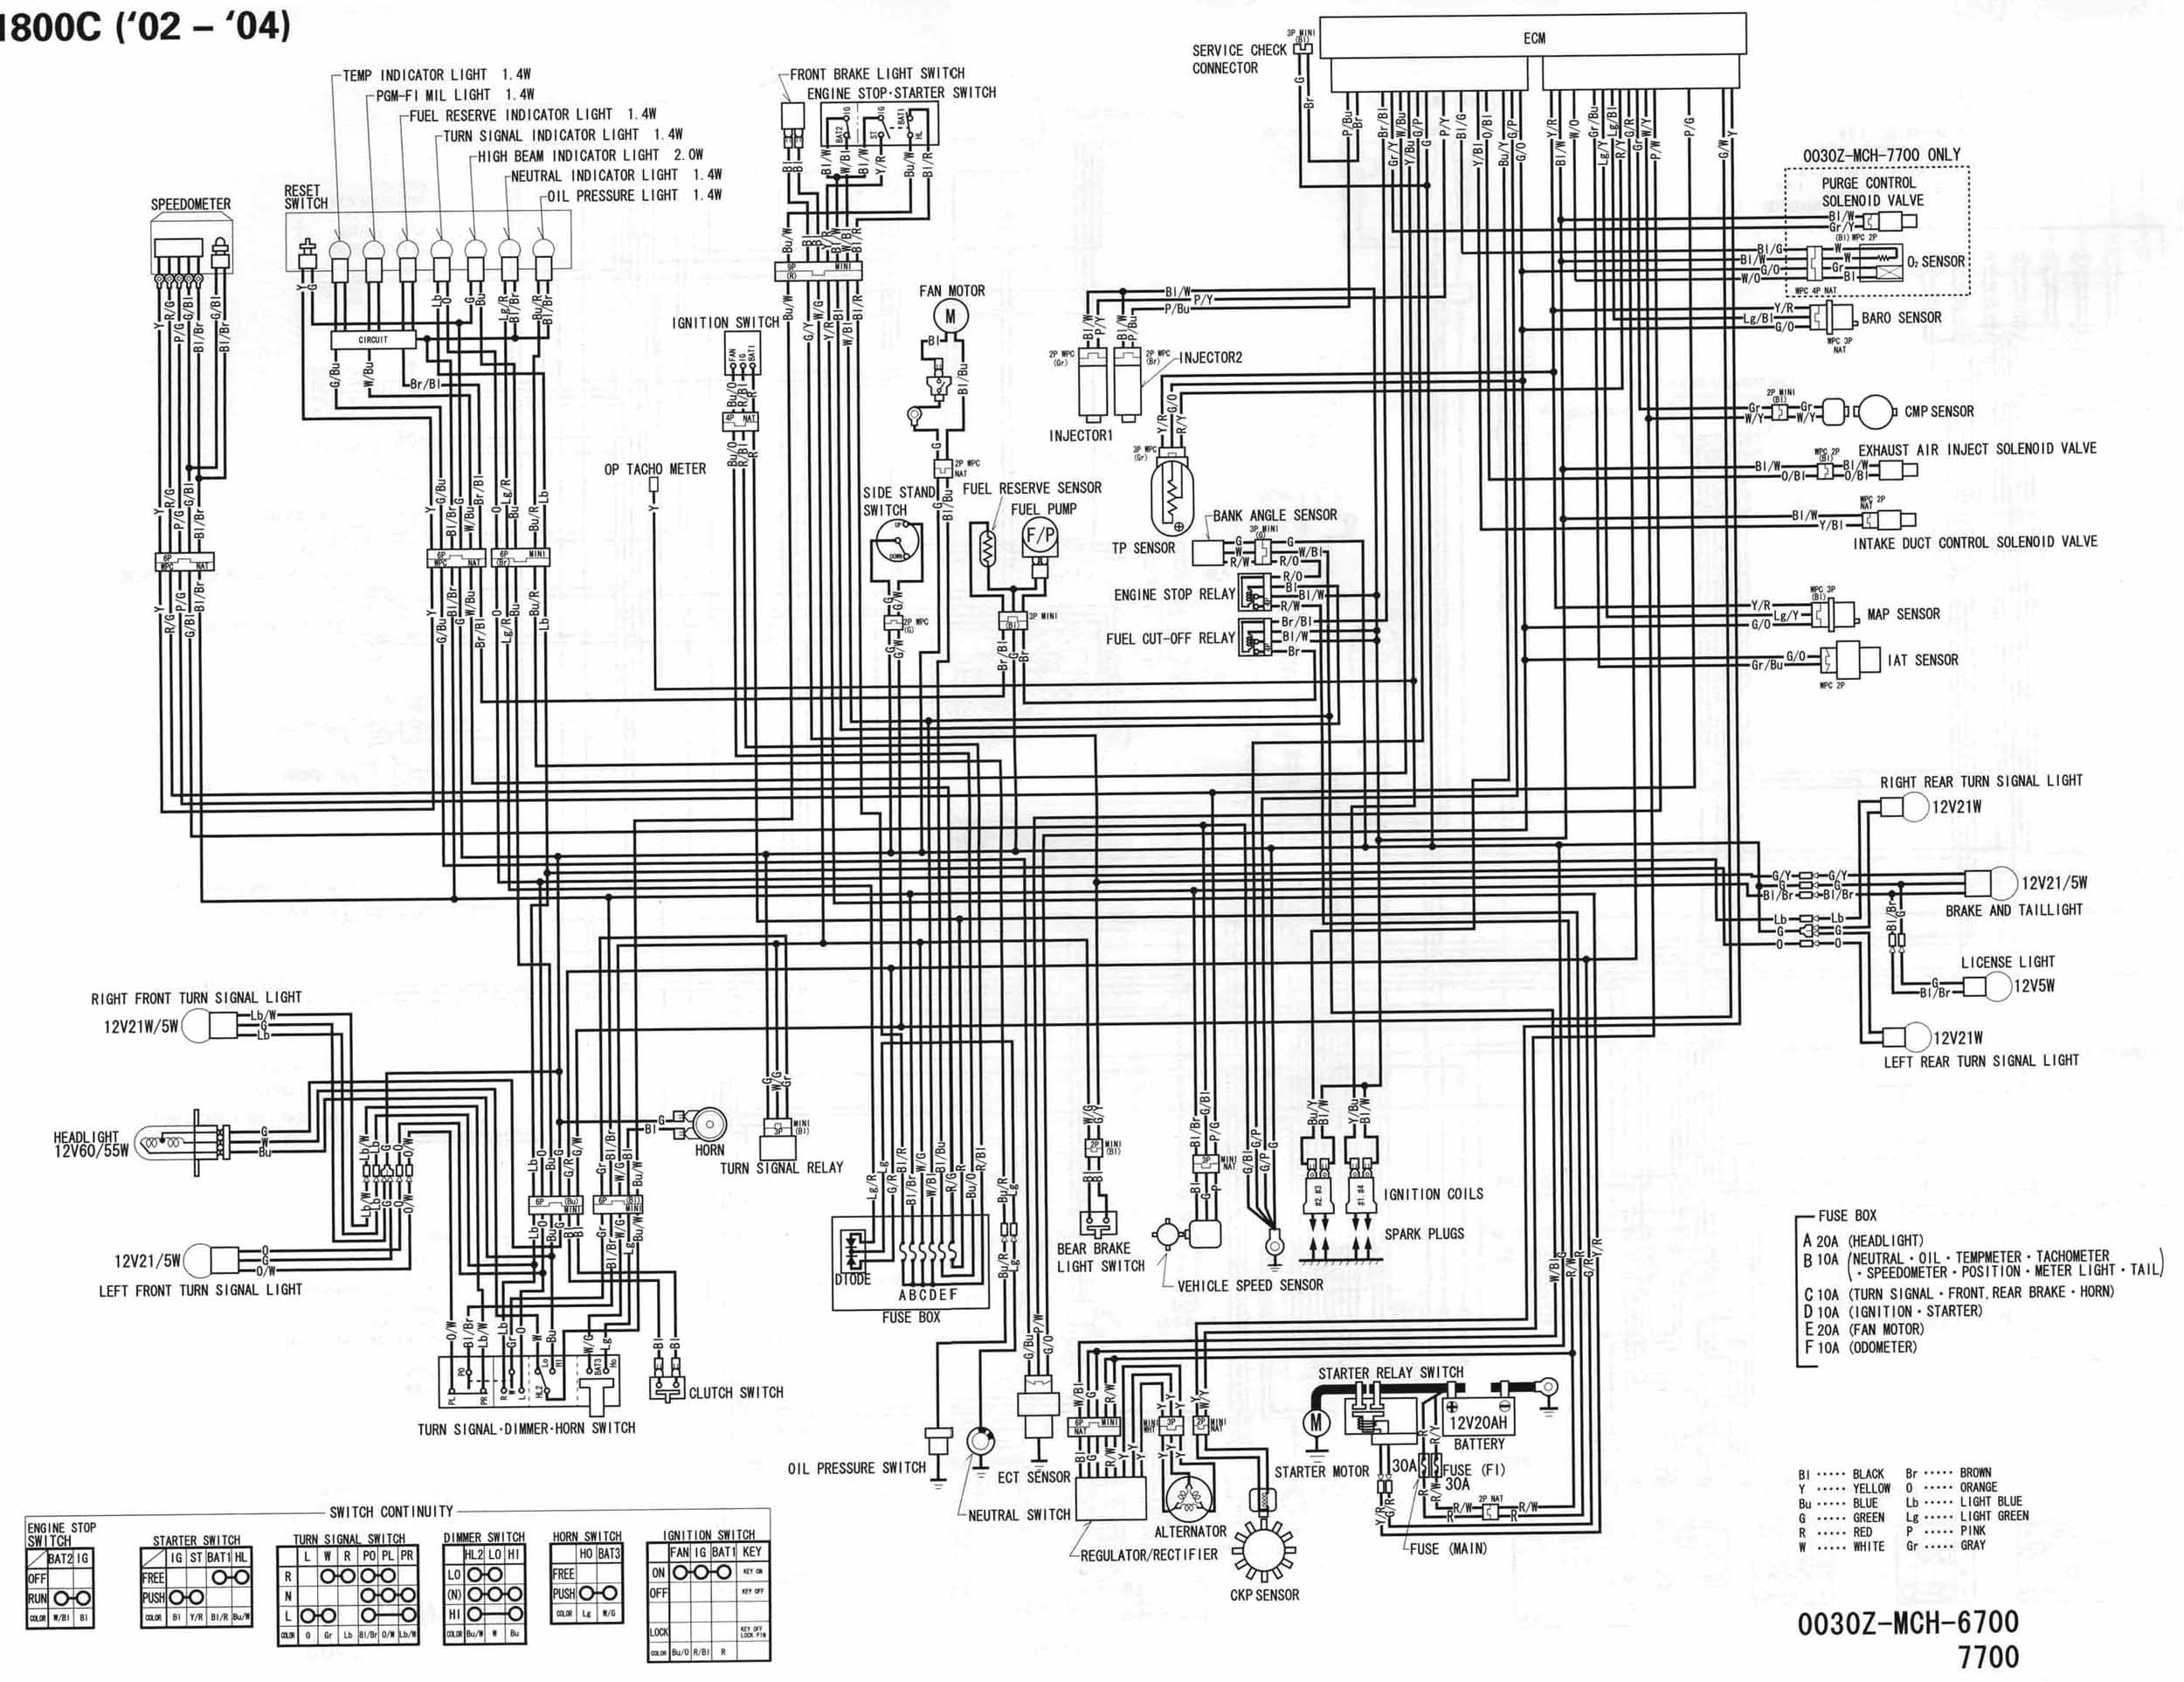 Motorcycle wire schematics bareass choppers motorcycle tech pages 02 04 vtx 1800c schematic swarovskicordoba Images